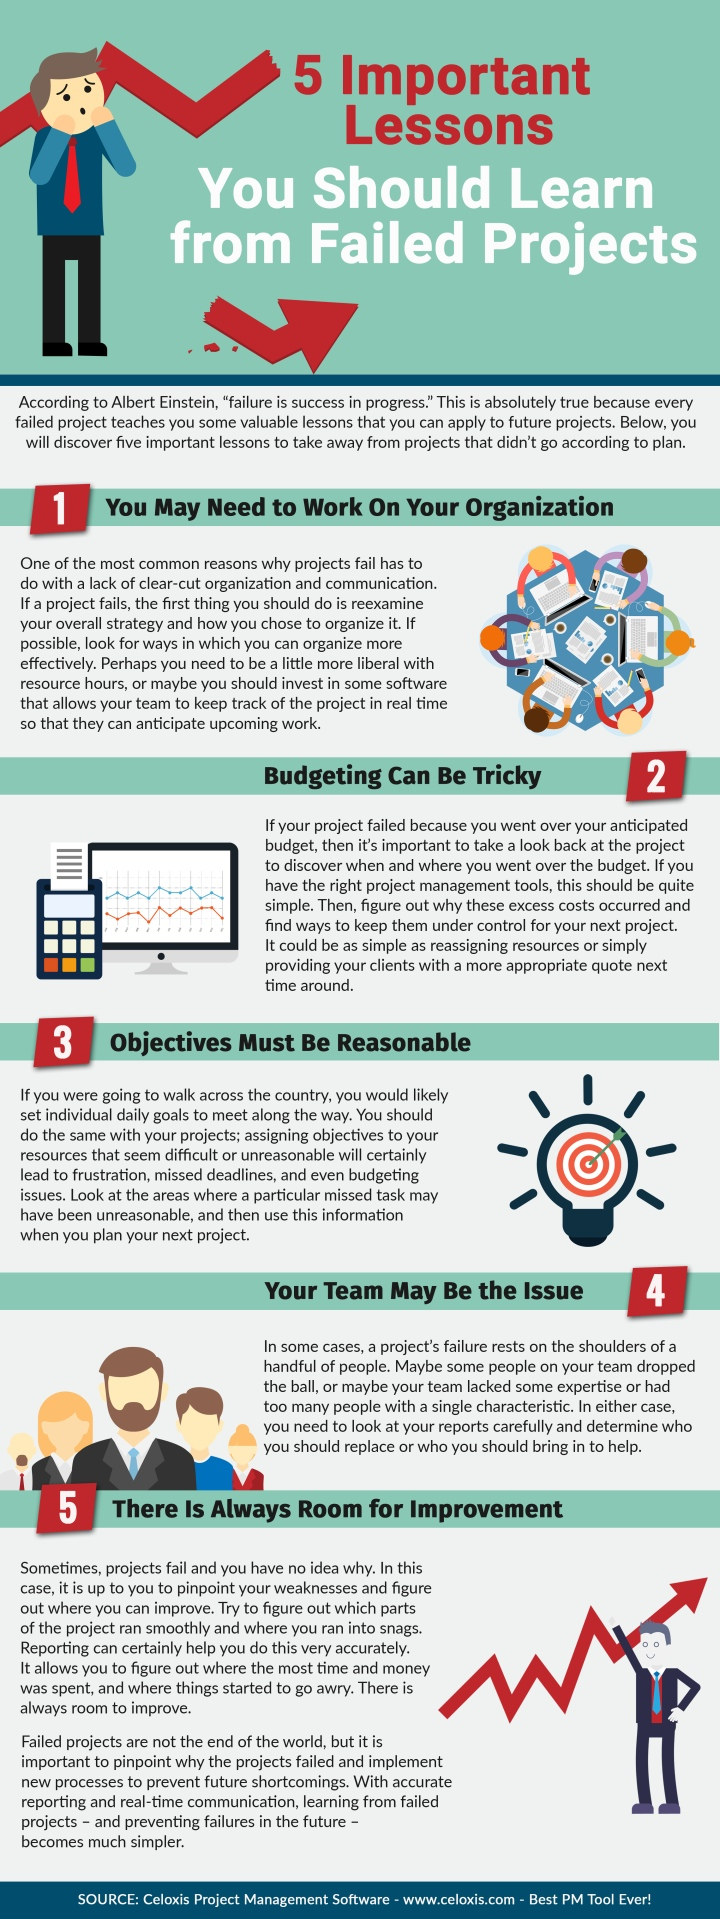 Infographic: 5 Important Lessons You Should Learn from Failed Projects